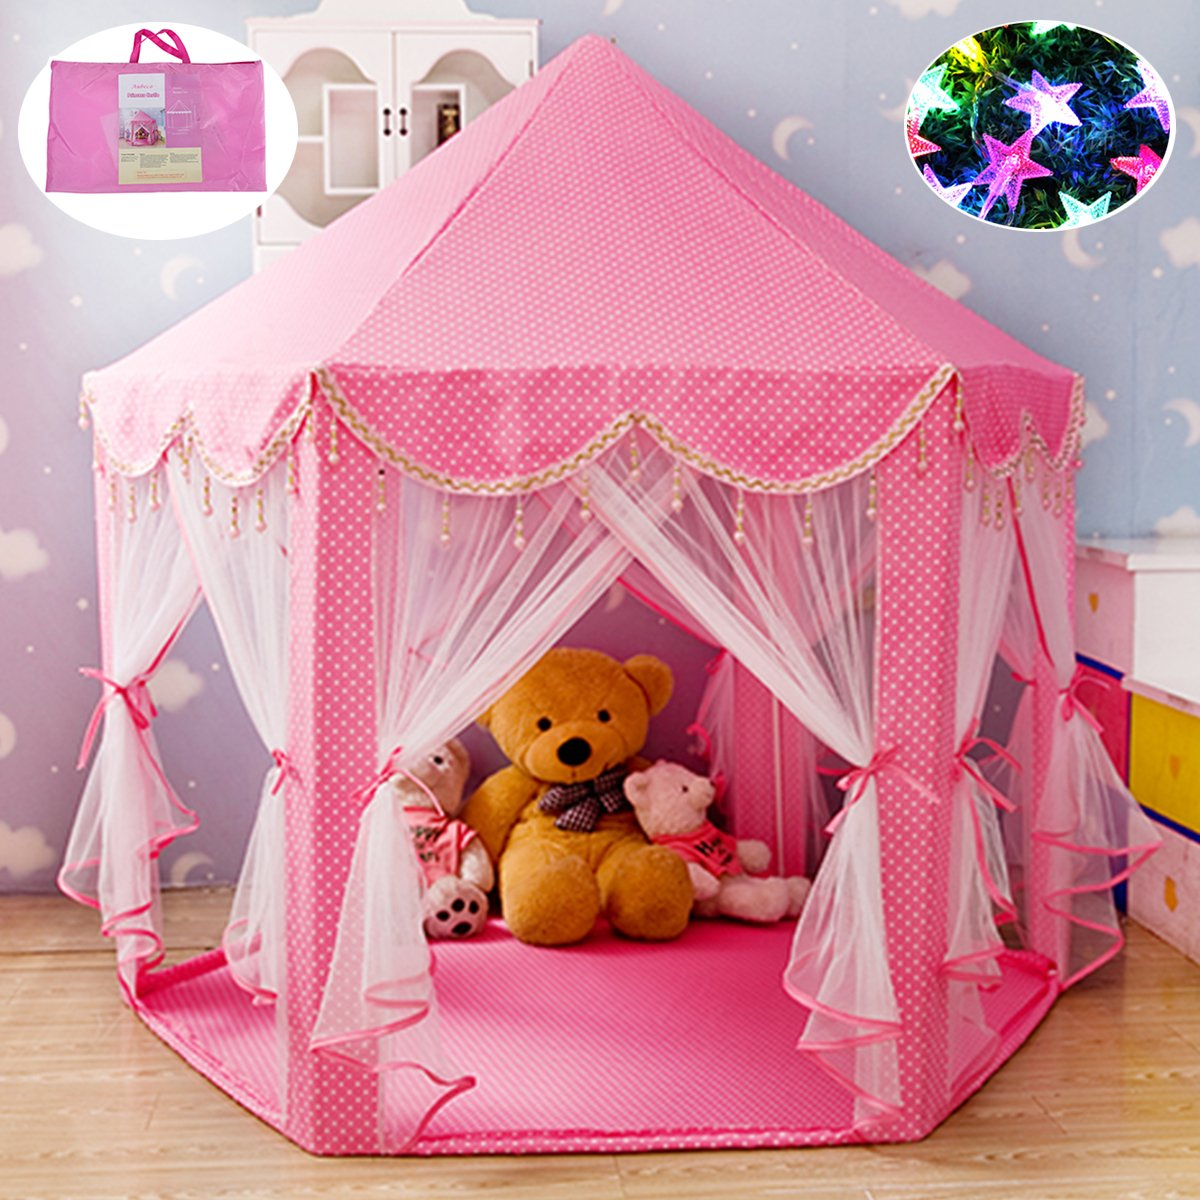 Aubeco Extra Thick Fabric Pink Hexagon Princess Castle with Beading Decoration Cute Indoor Kids Play Tent Outdoor Girls Playhouse with 23ft LED Star String Lights, 55''(Diameter)×53''( Height)